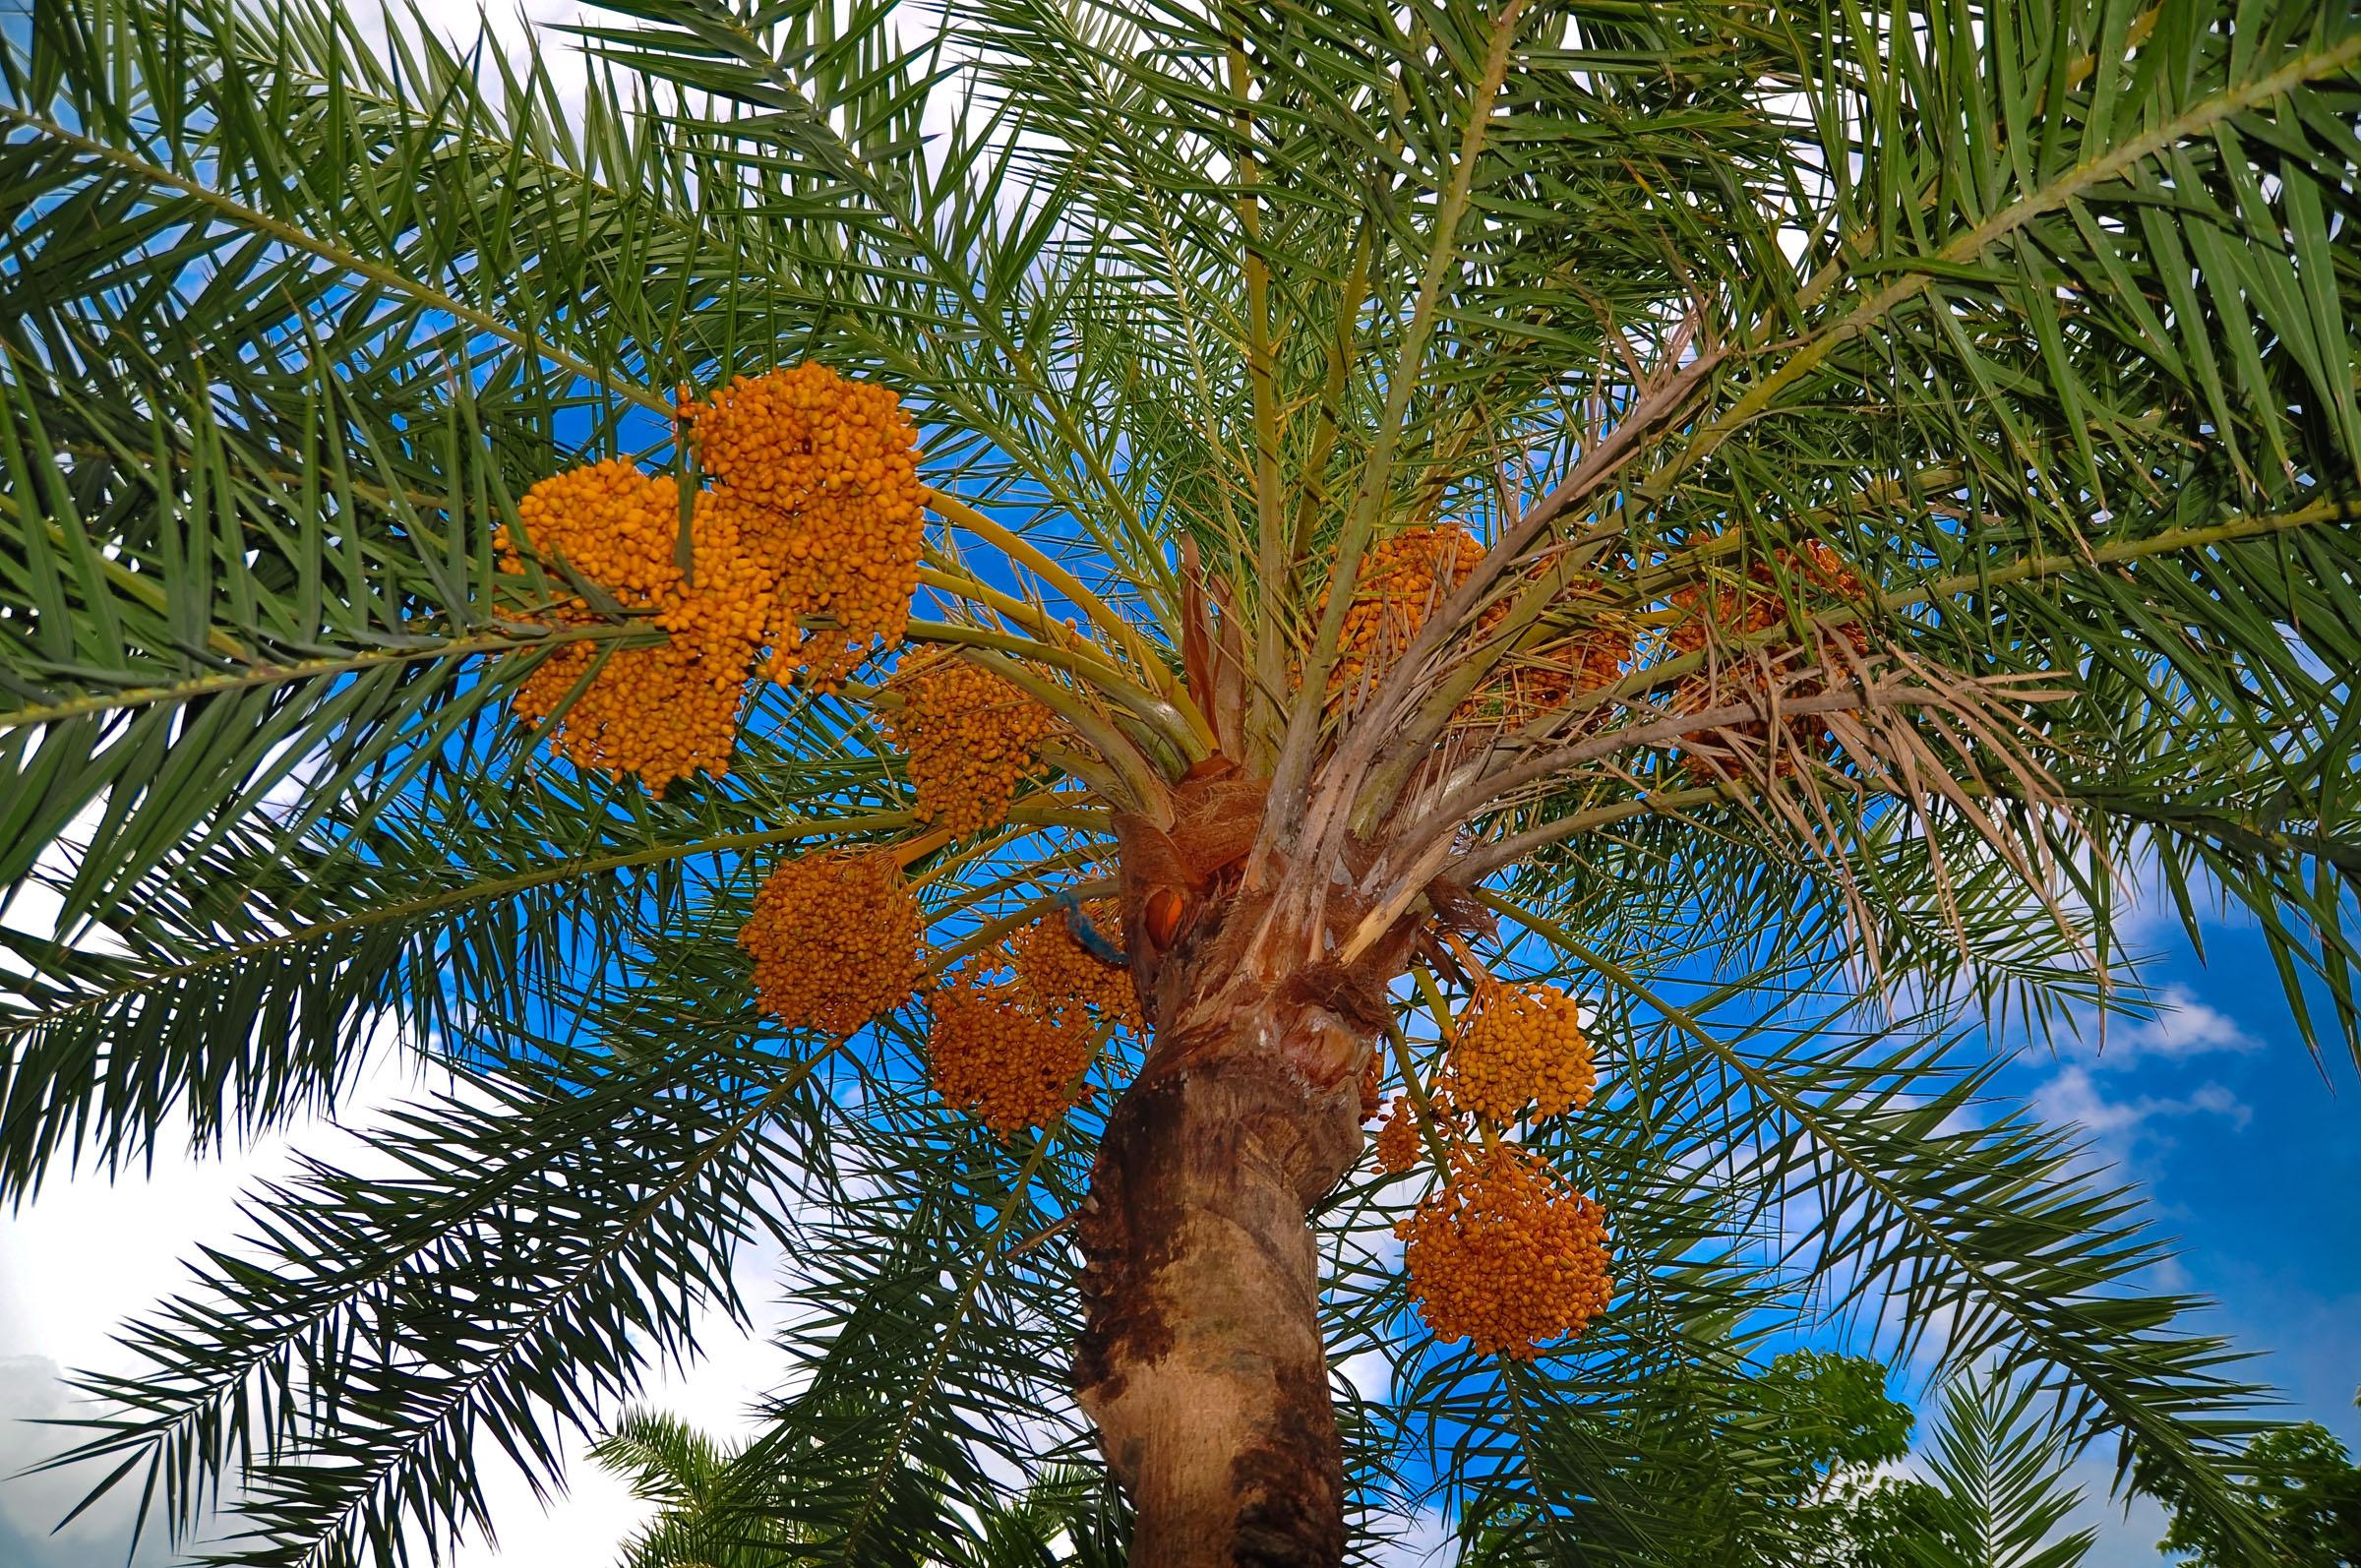 The date palm tree is the focus of One Million Date Palm Trees Project in Oman, where the crop plays an important role in the cultural history and economy of the country.